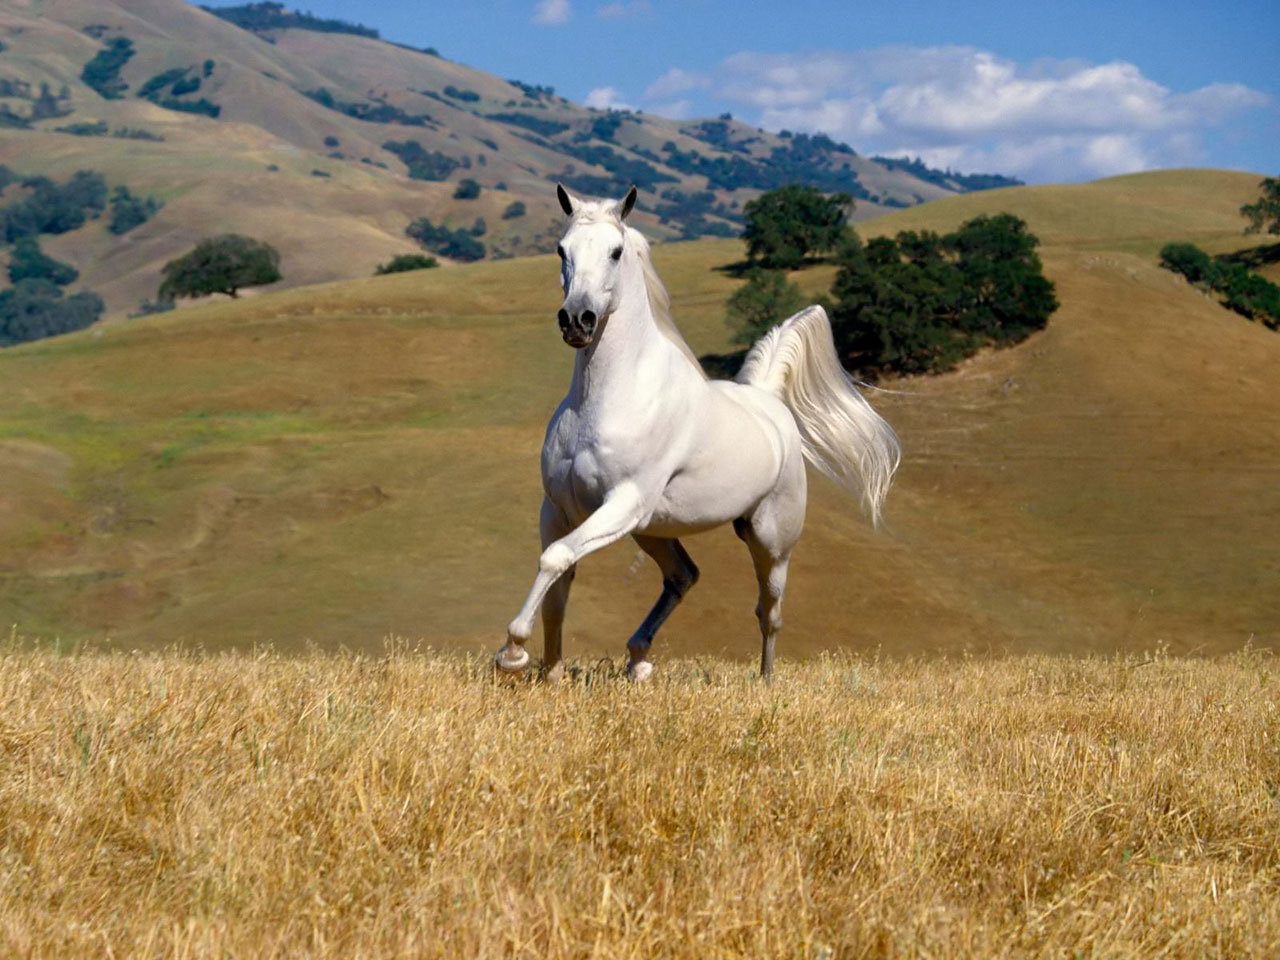 Download   Wallpaper Horse Couple - wild+horses+wallpapers+6  Snapshot_447988.jpg